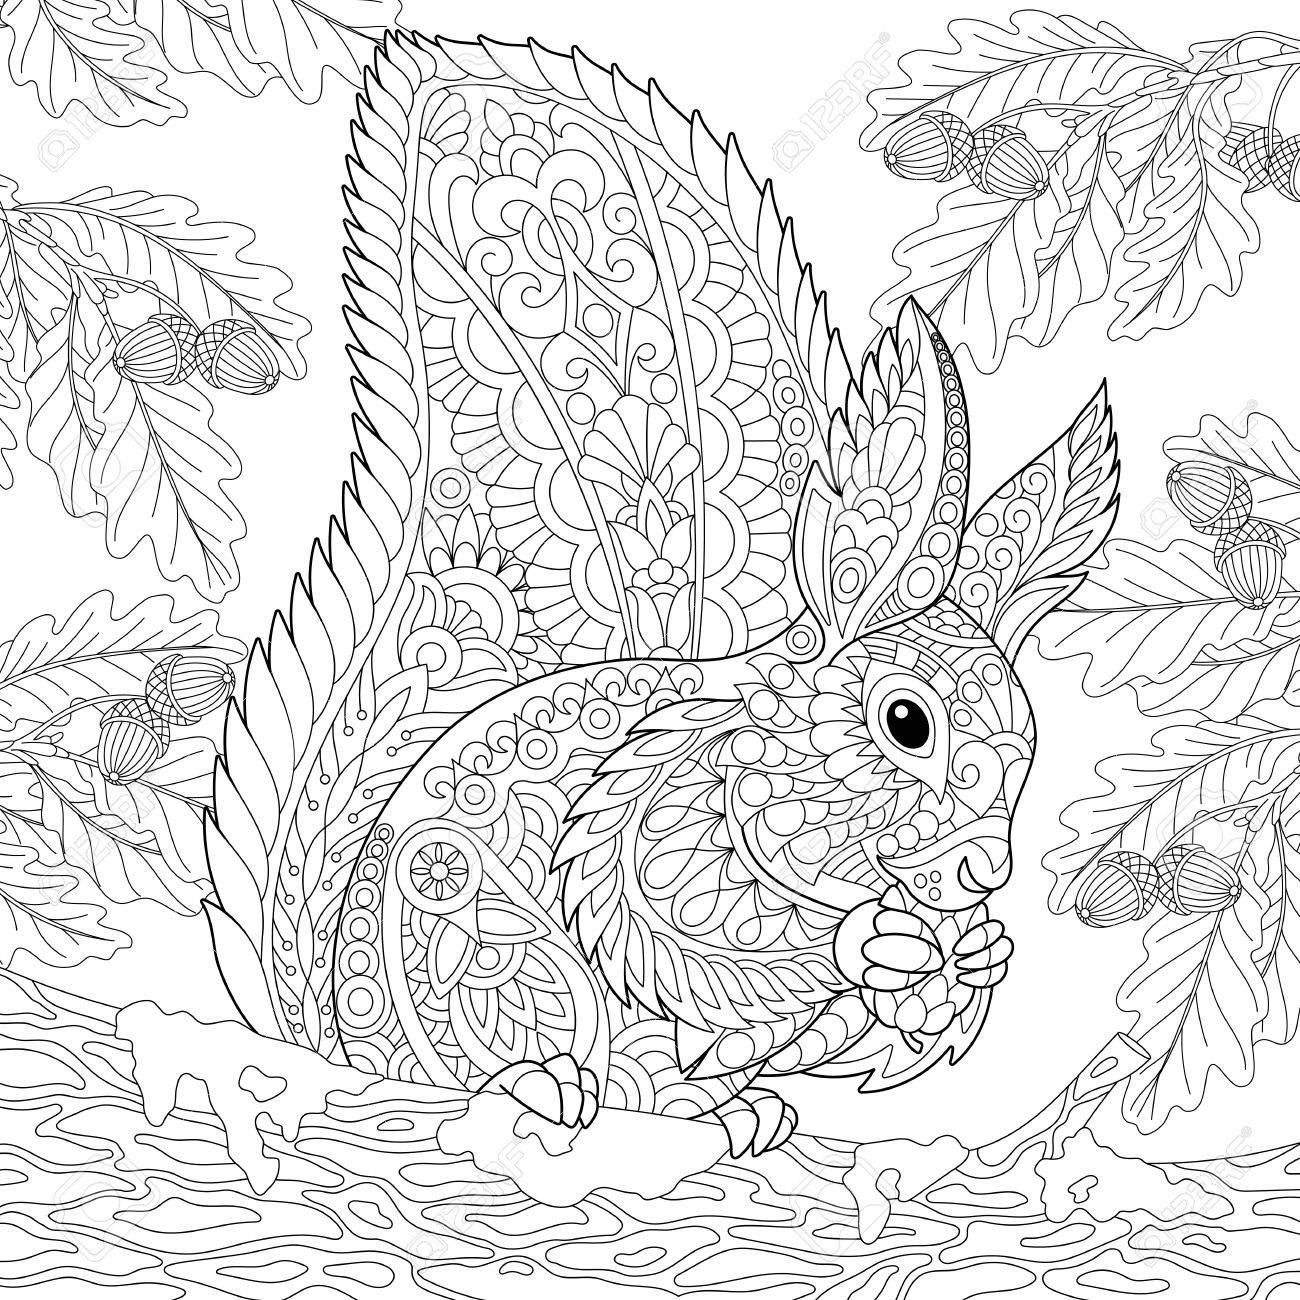 Coloring Page Of A Squirrel Sitting On An Oak Tree Branch And Oak Tree Coloring Pages